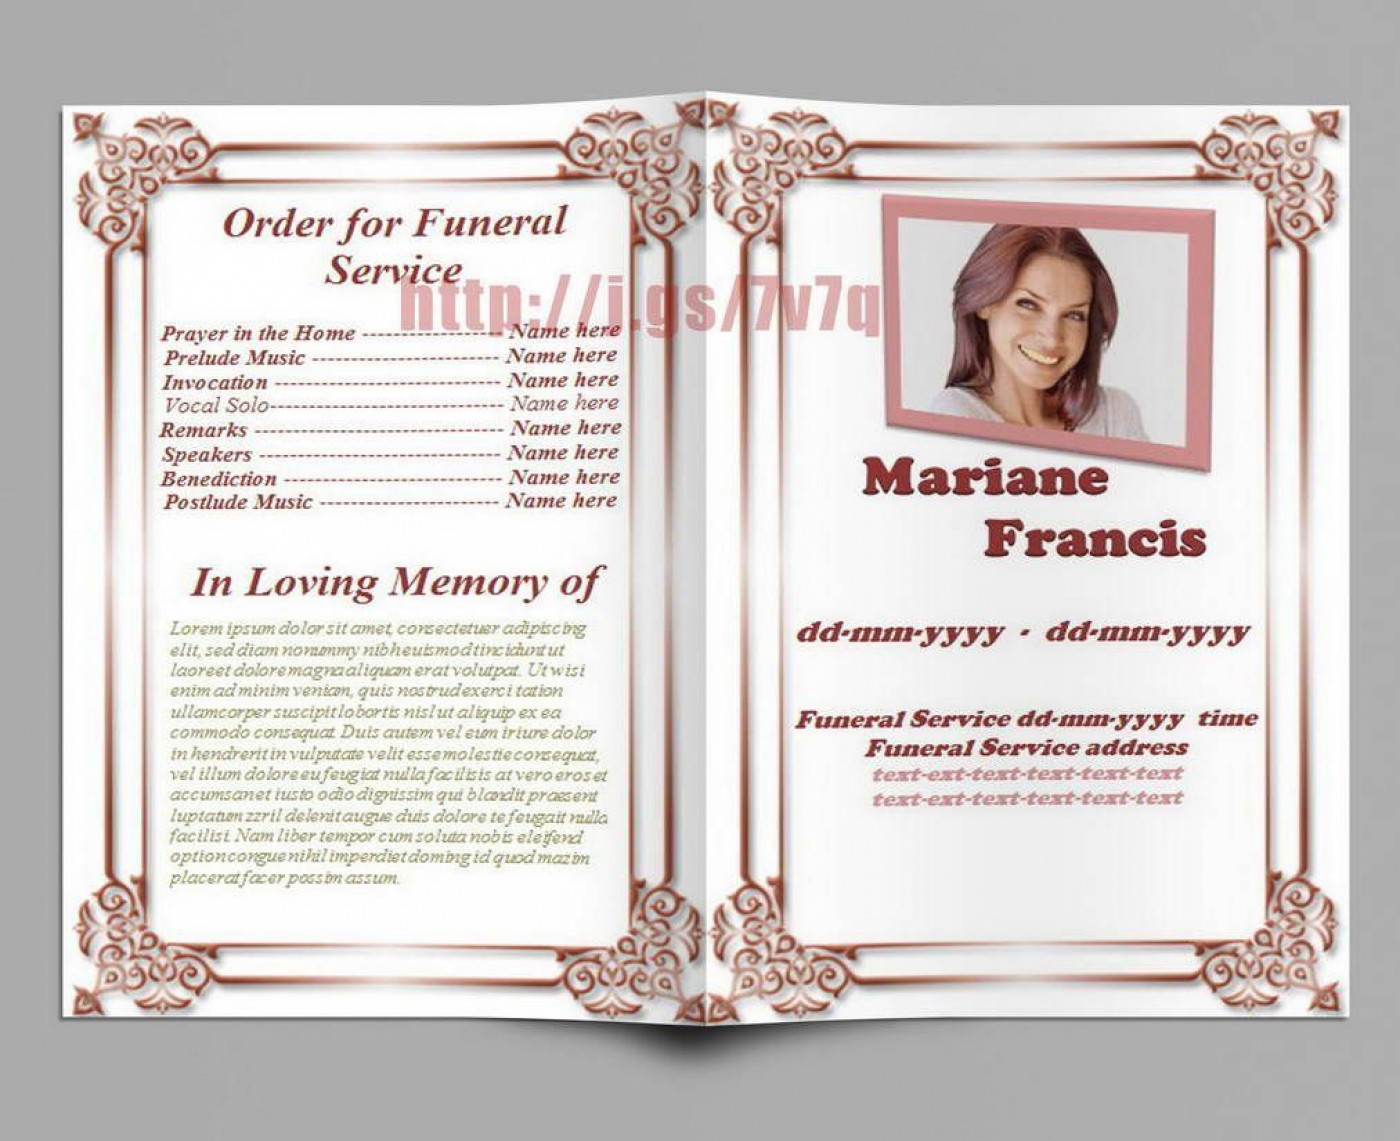 004 Awesome Funeral Program Template Free High Resolution  Printable Design1400